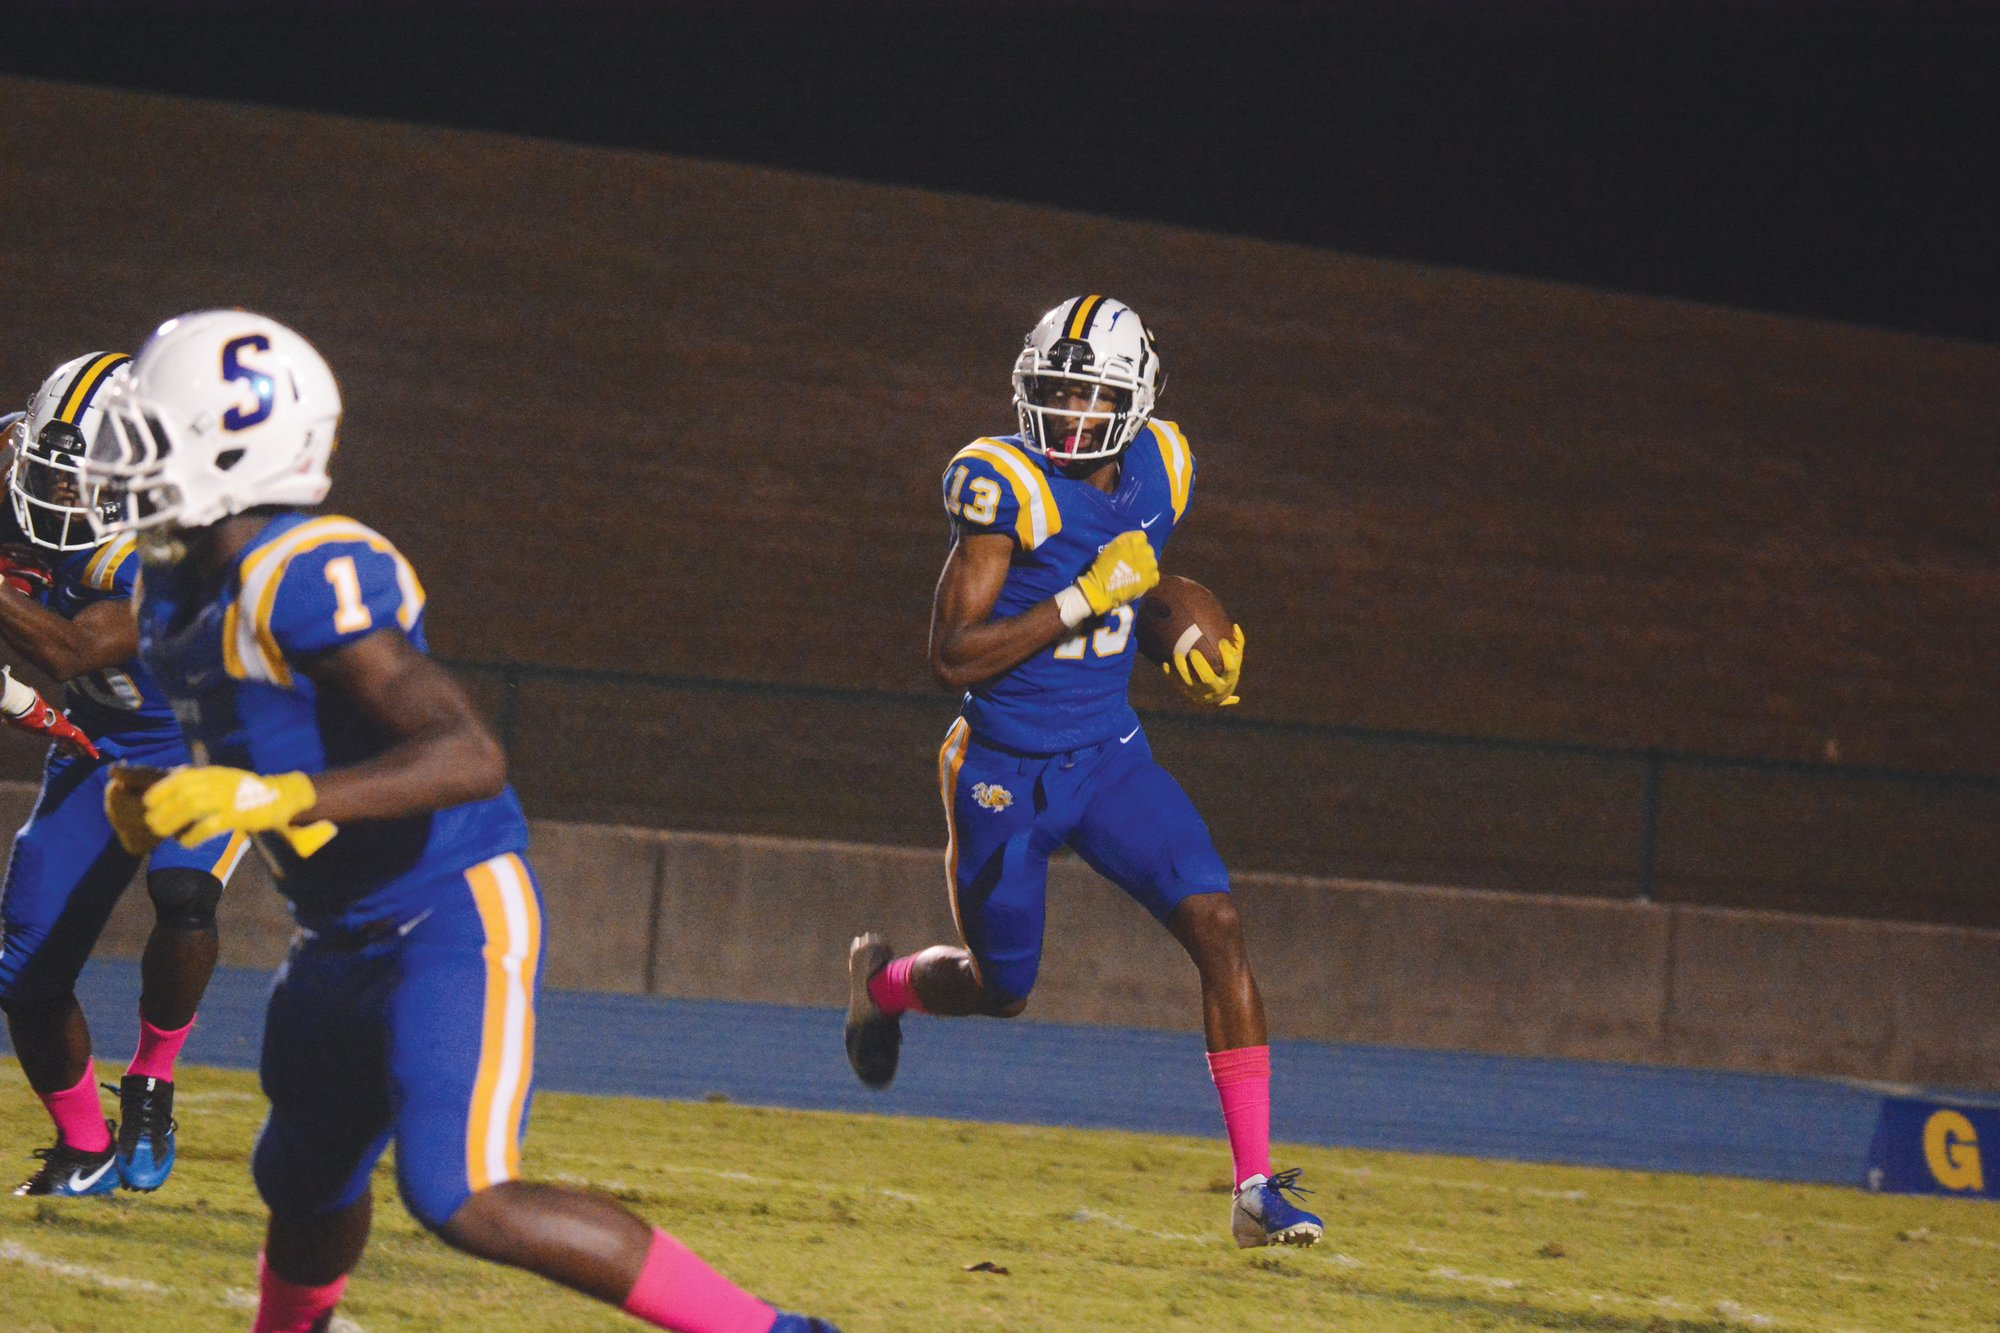 Sumter wide out Tylee Craft (13) and the Gamecocks maintained their fifth place ranking in the SCHSL 5A S.C. Prep Media Football Poll this week.